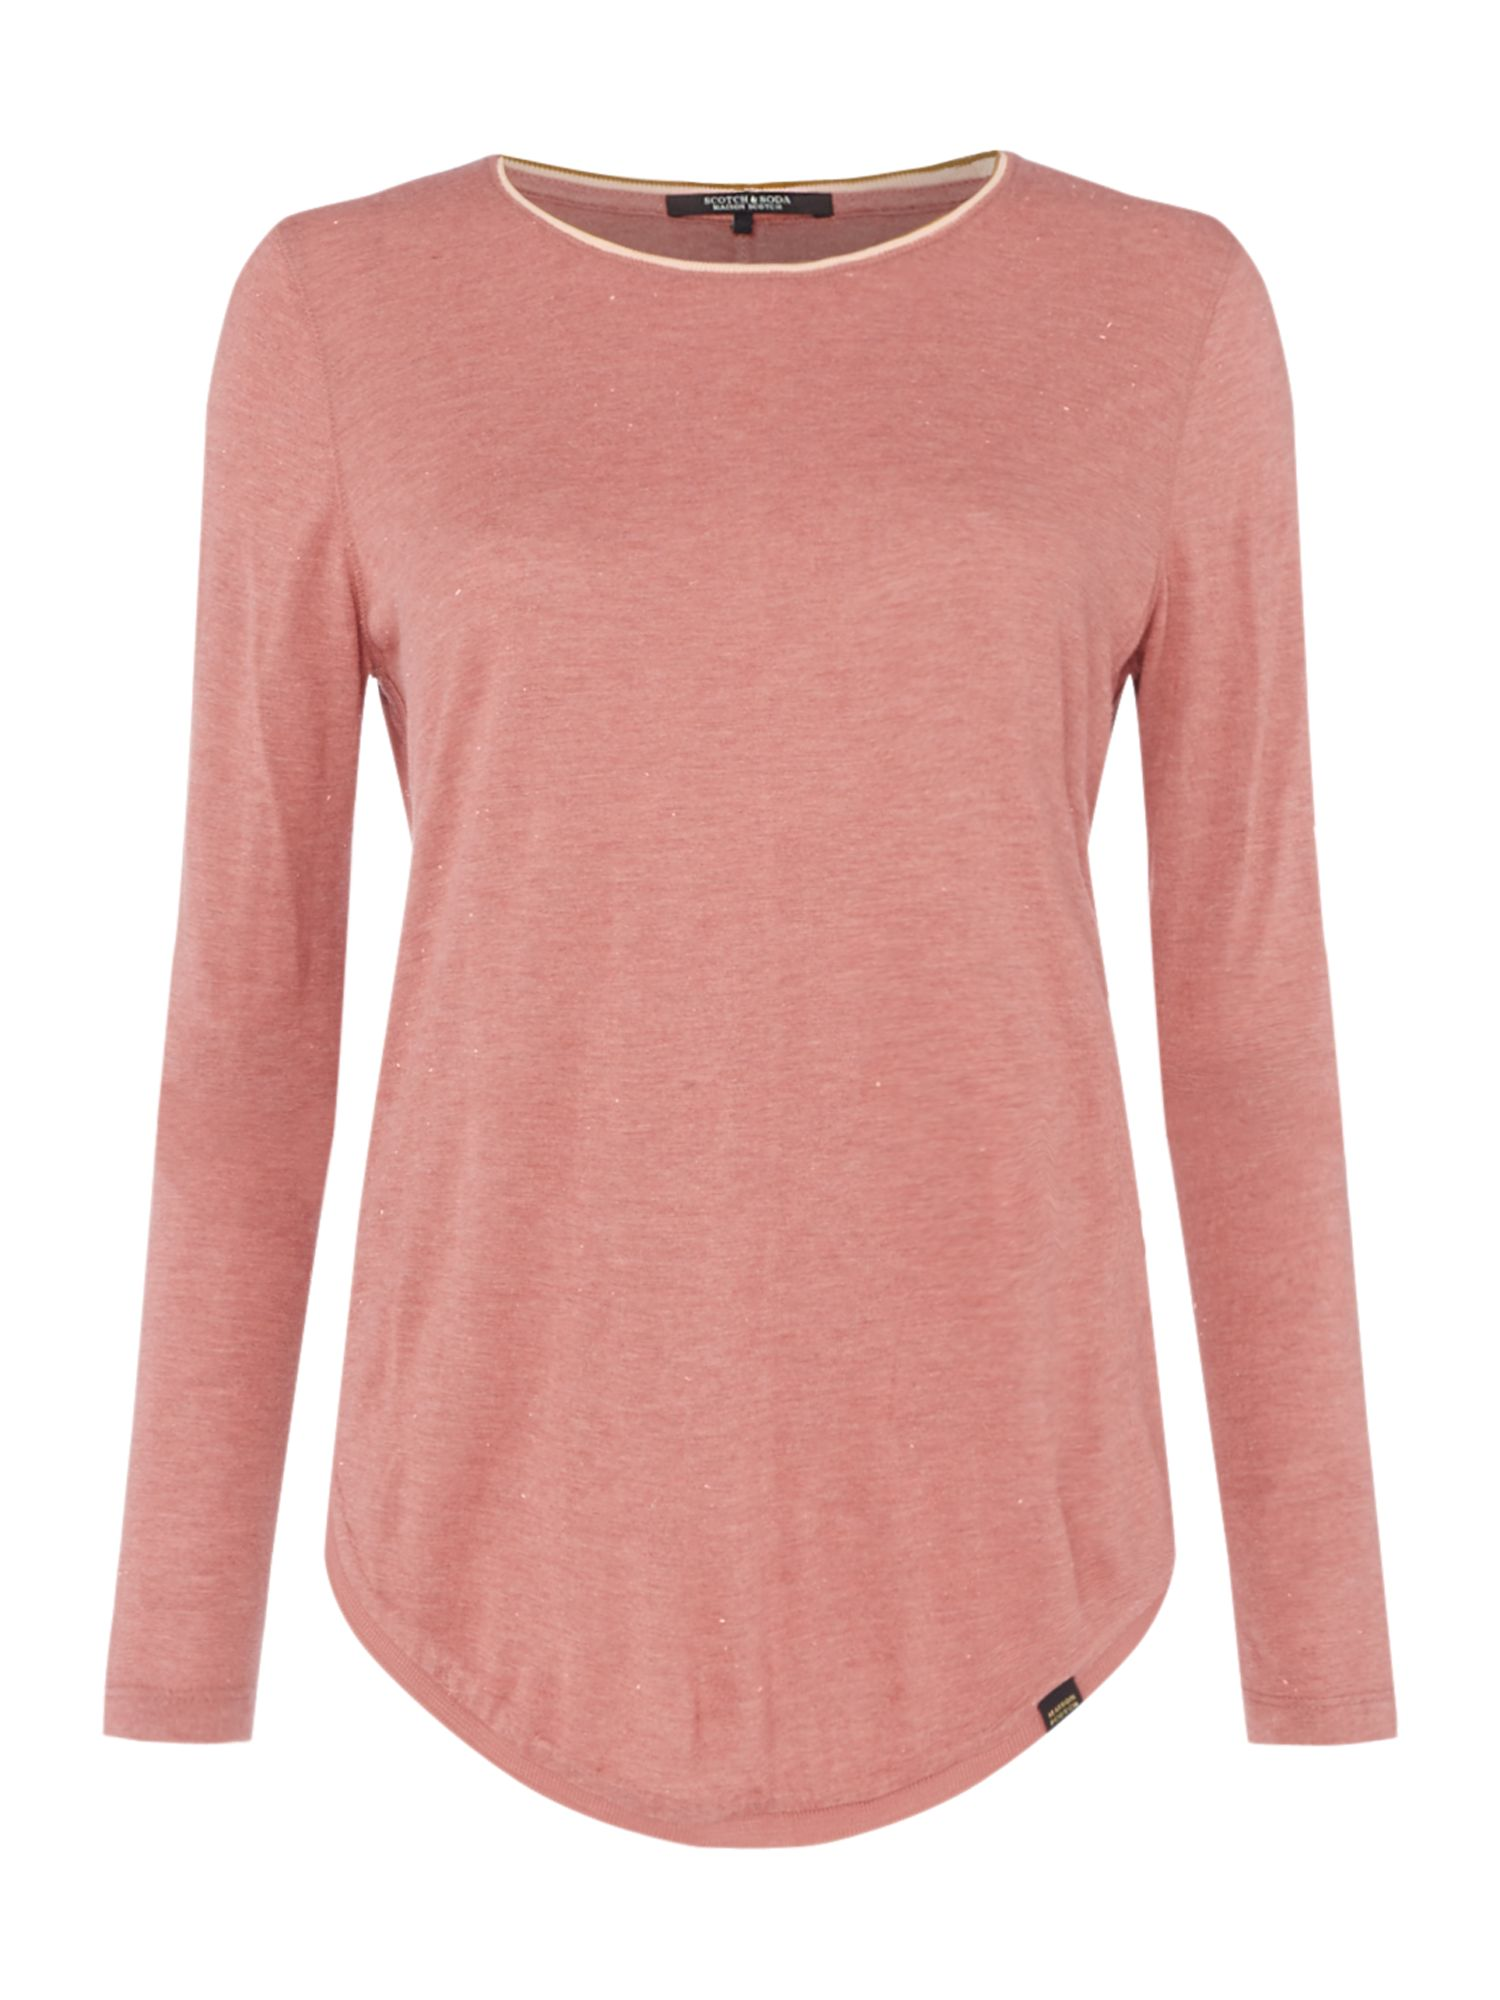 Maison Scotch Long sleeve top with rib neckline, Rose